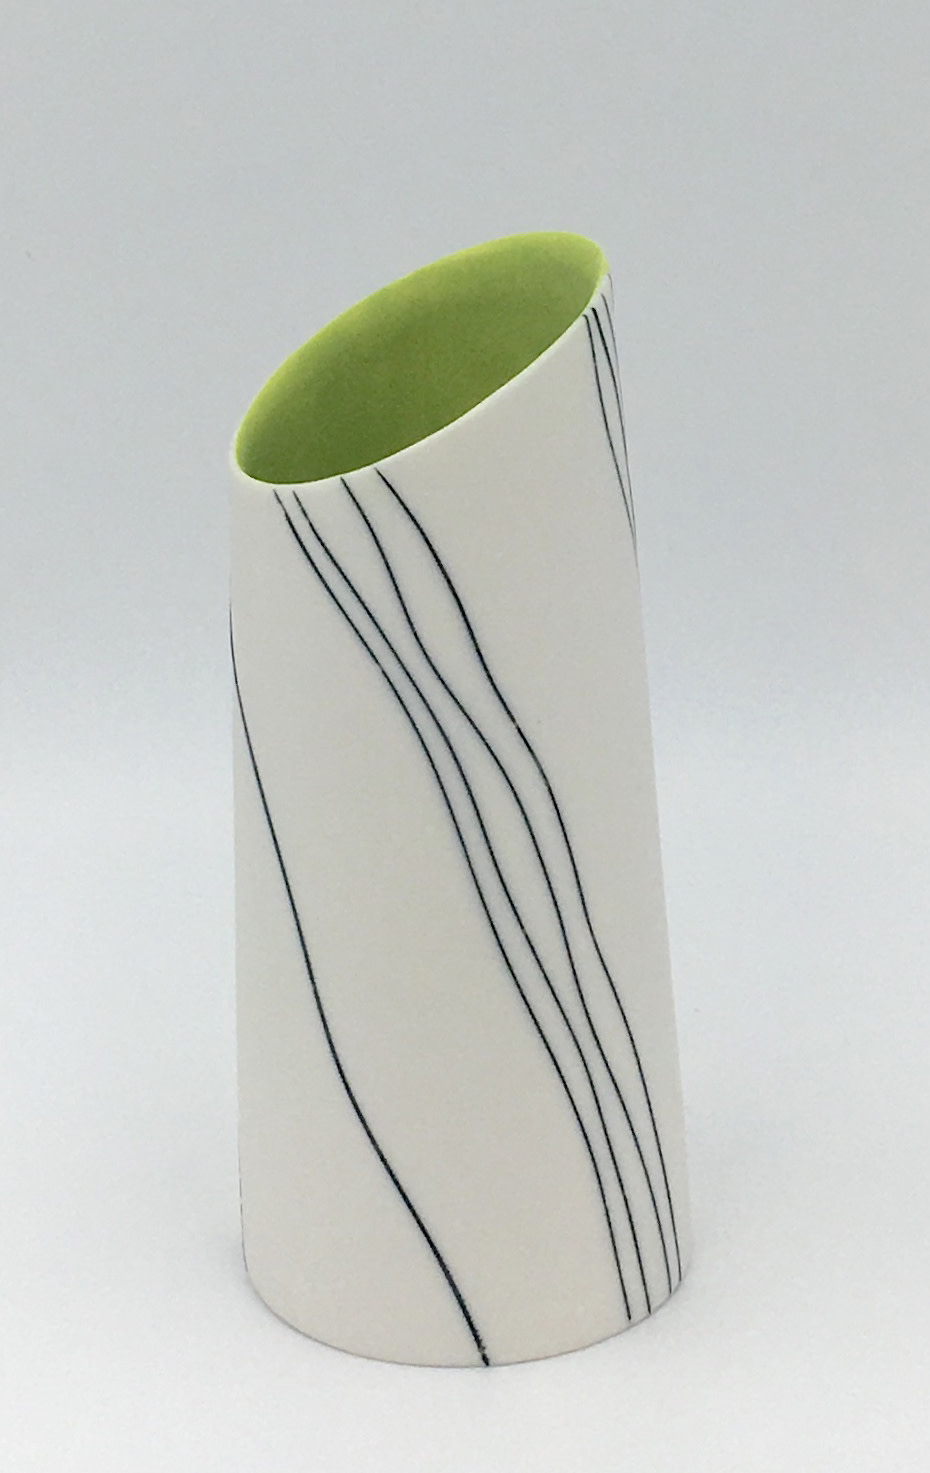 "<span class=""link fancybox-details-link""><a href=""/artists/195-lara-scobie/works/6533-lara-scobie-vase-with-tilted-rim-2019/"">View Detail Page</a></span><div class=""artist""><strong>Lara Scobie</strong></div> <div class=""title""><em>Vase with Tilted Rim</em>, 2019</div> <div class=""medium"">Porcelain</div>"